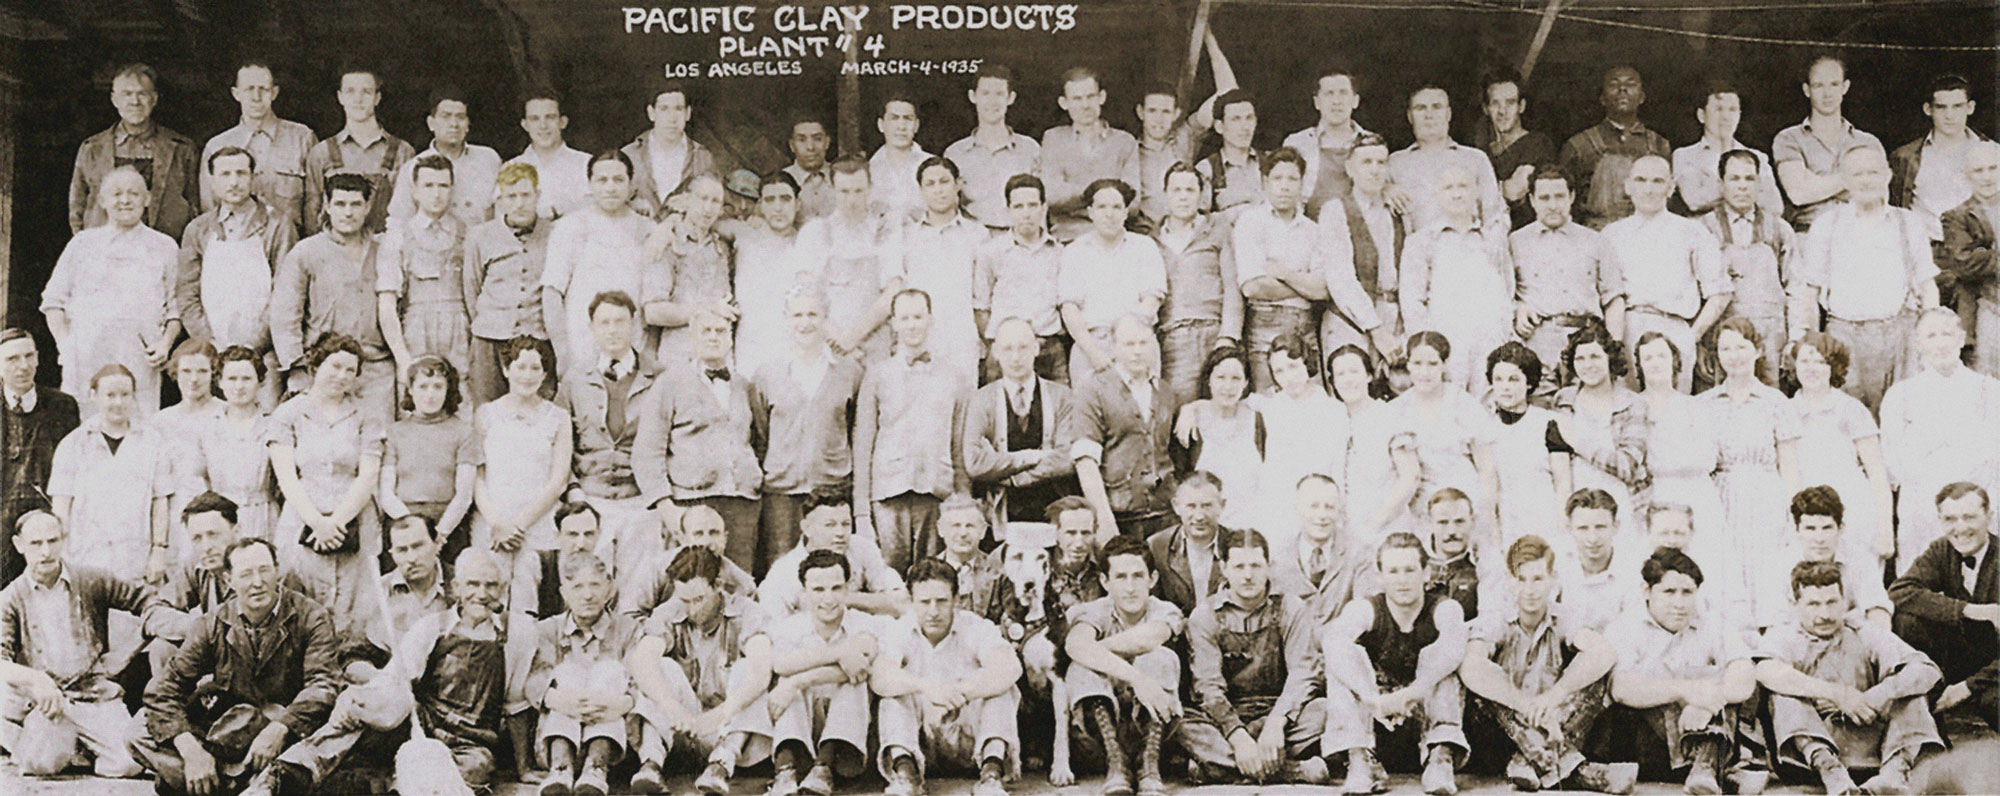 Pacific Clay Employees 1935